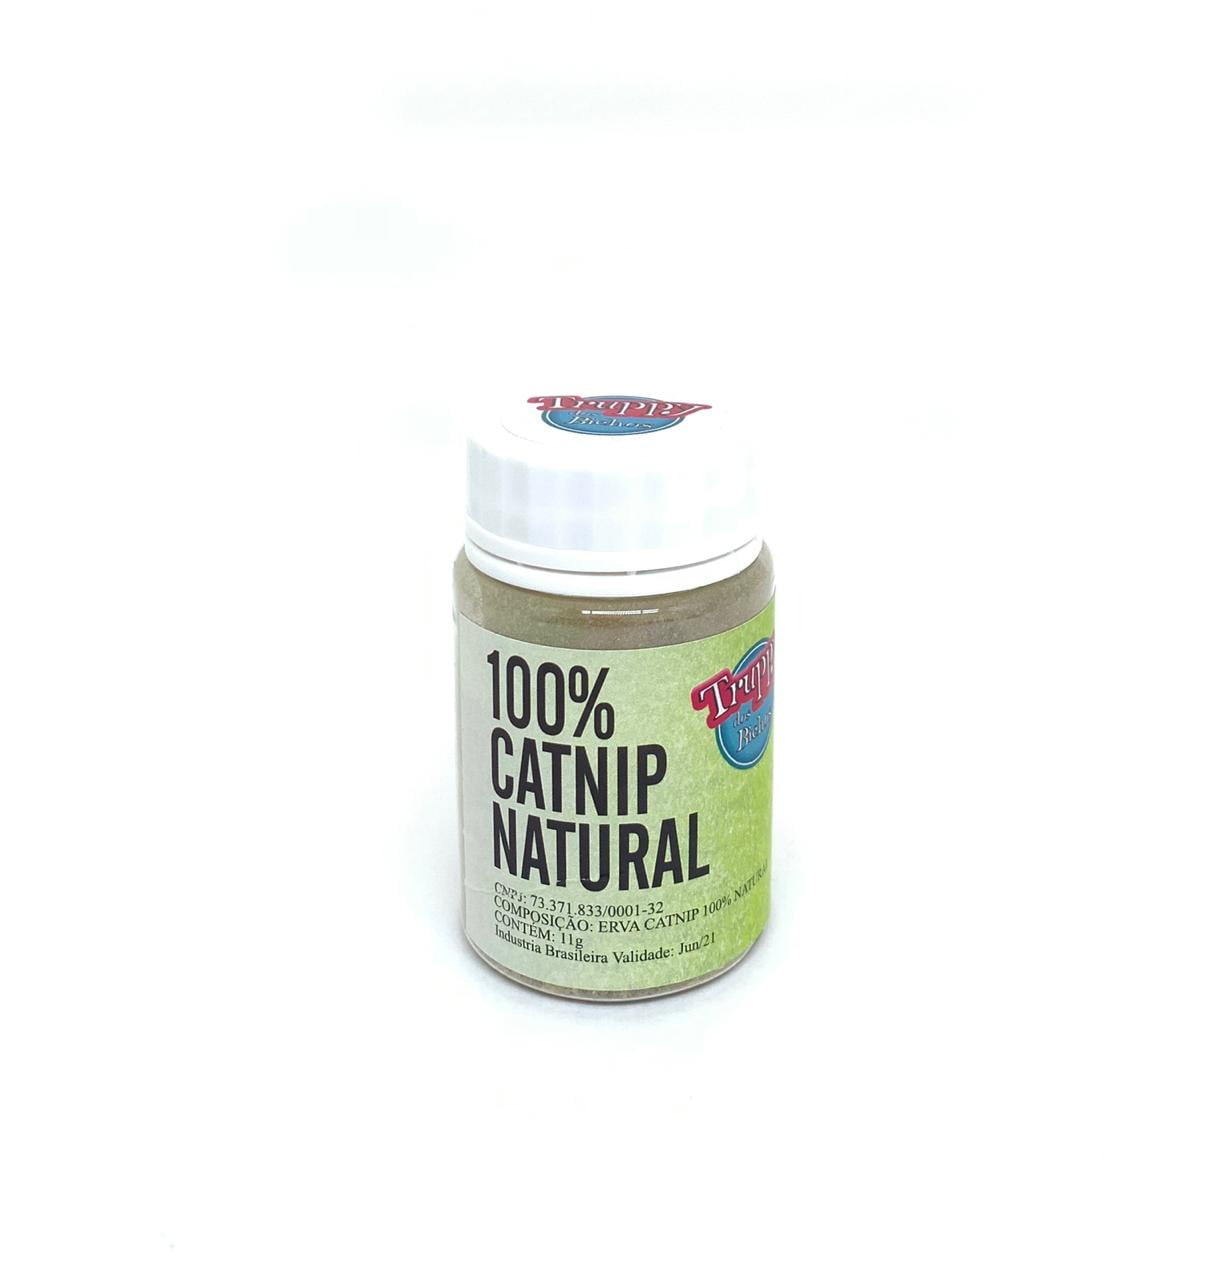 Catnip 100% Natural - 11g